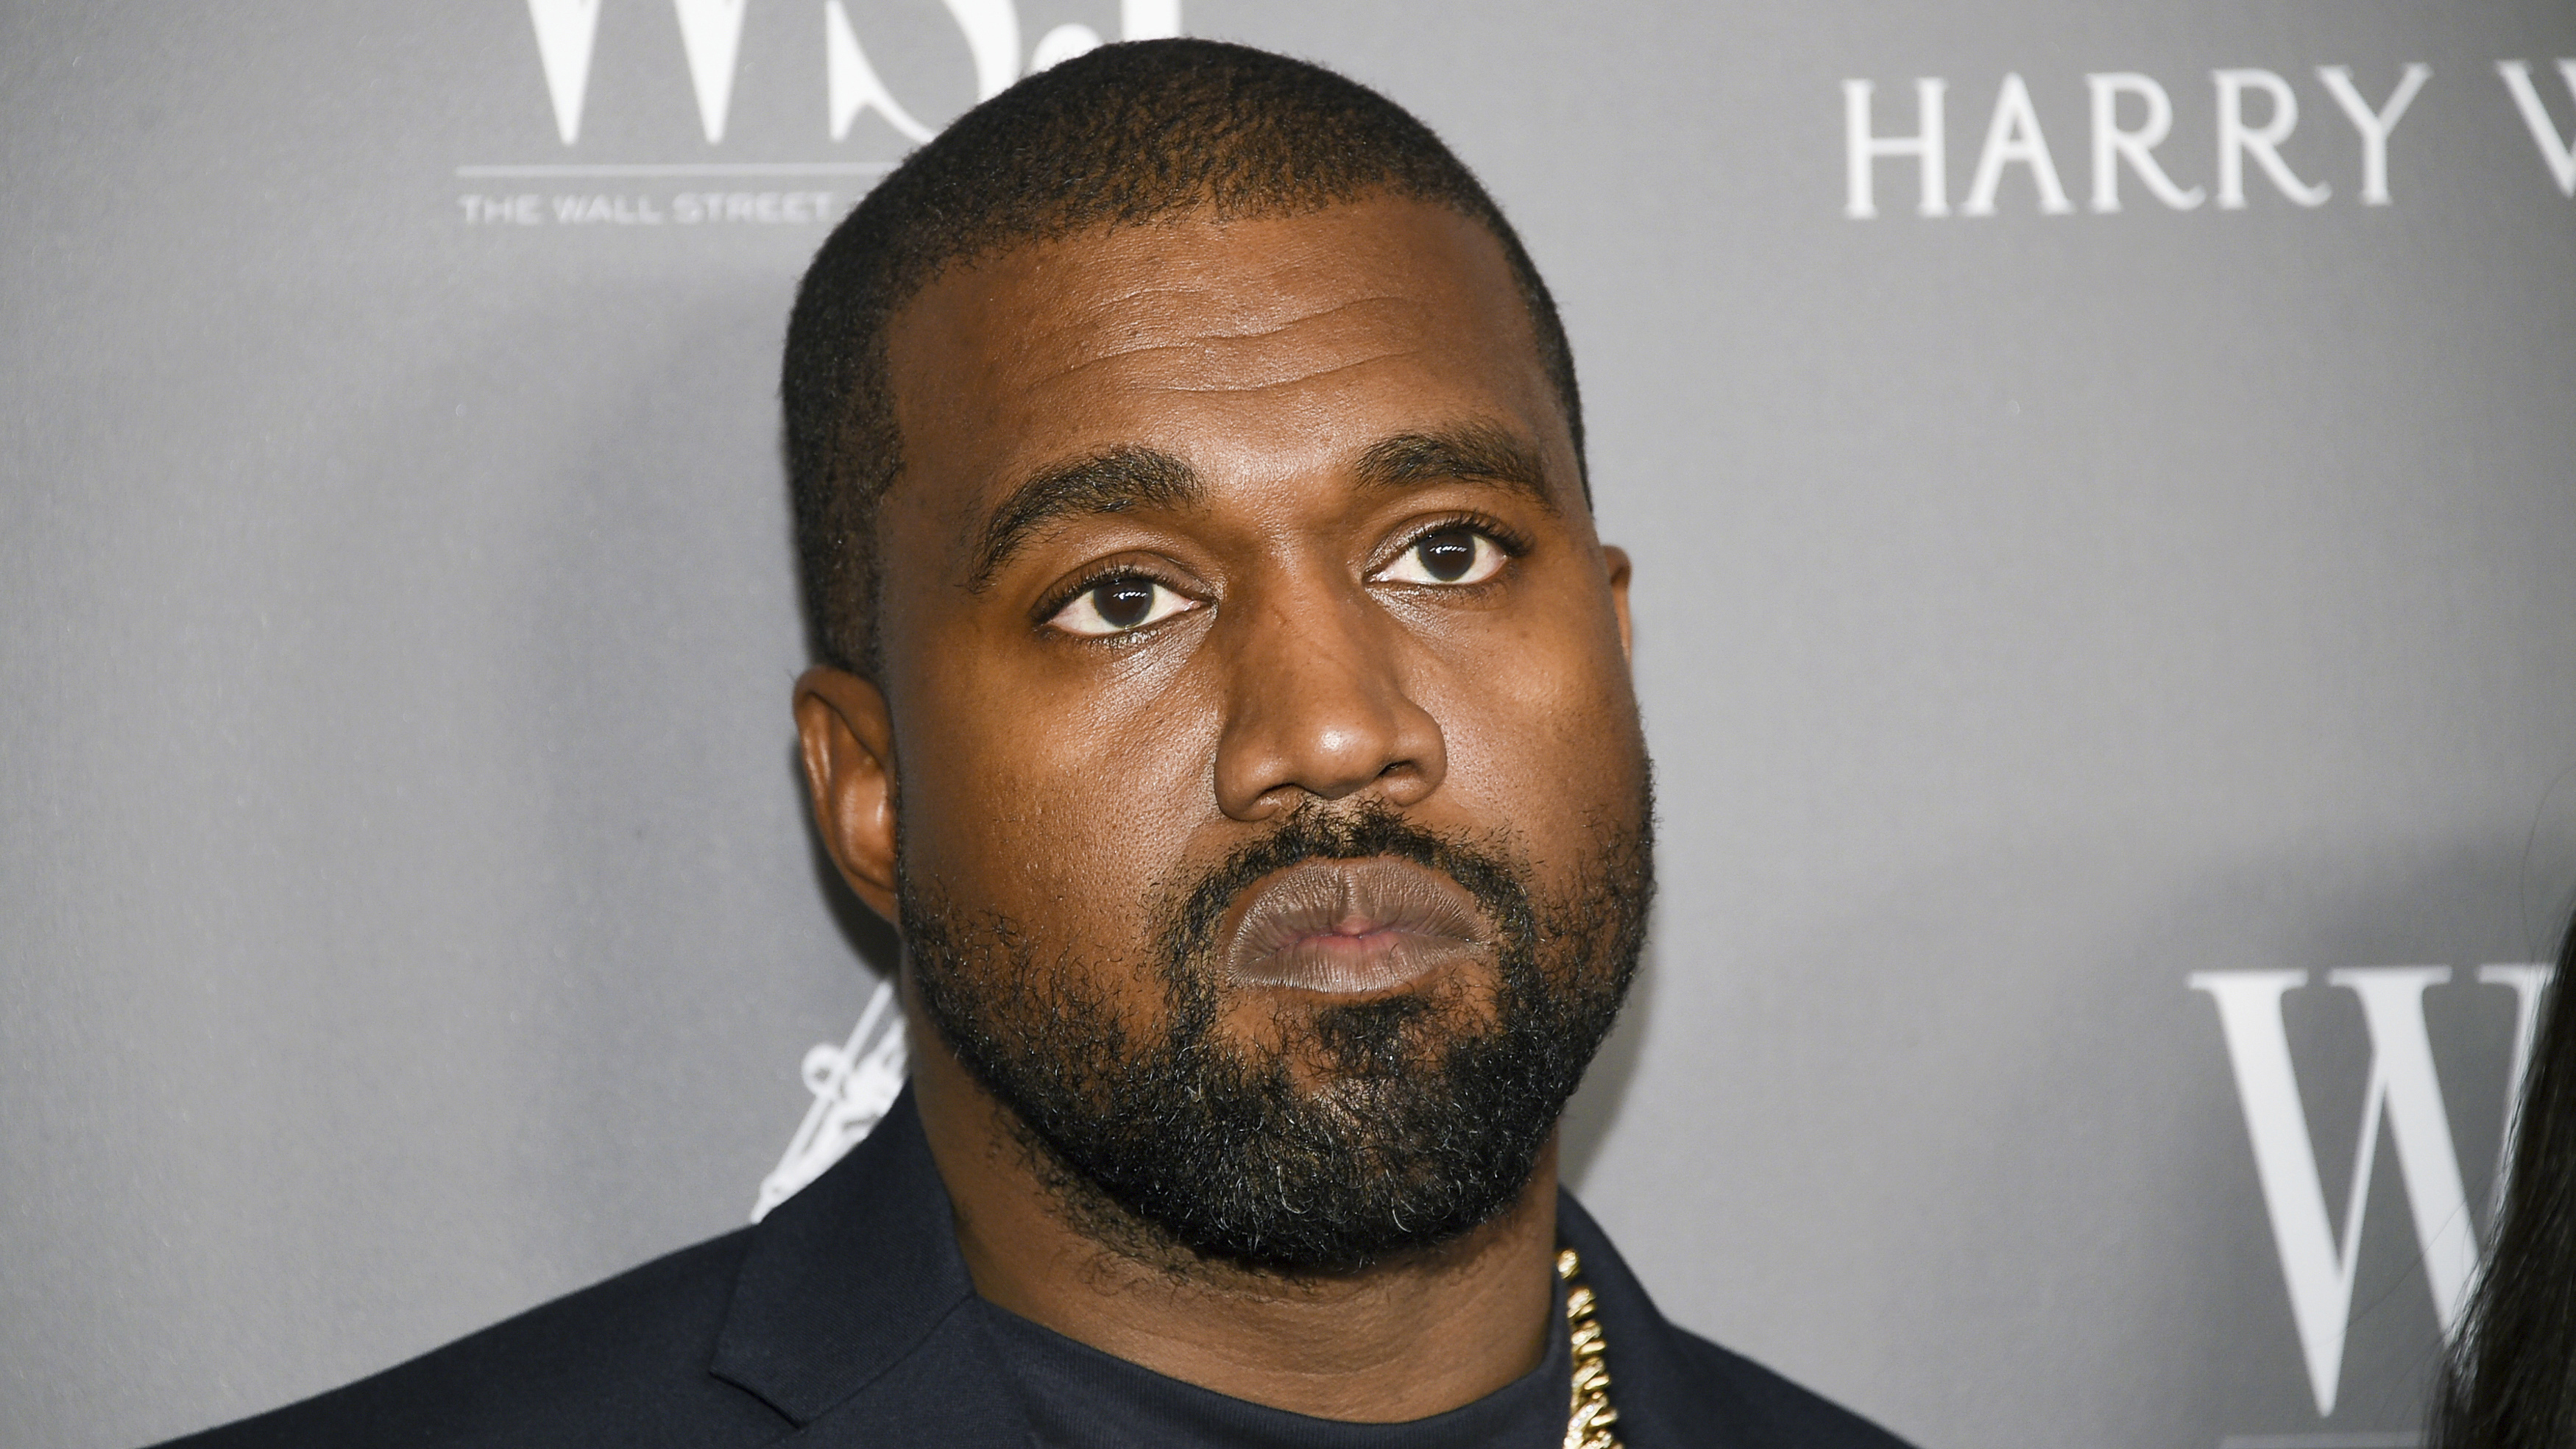 Kanye West plans amphitheater on his Wyoming ranch - Fox News